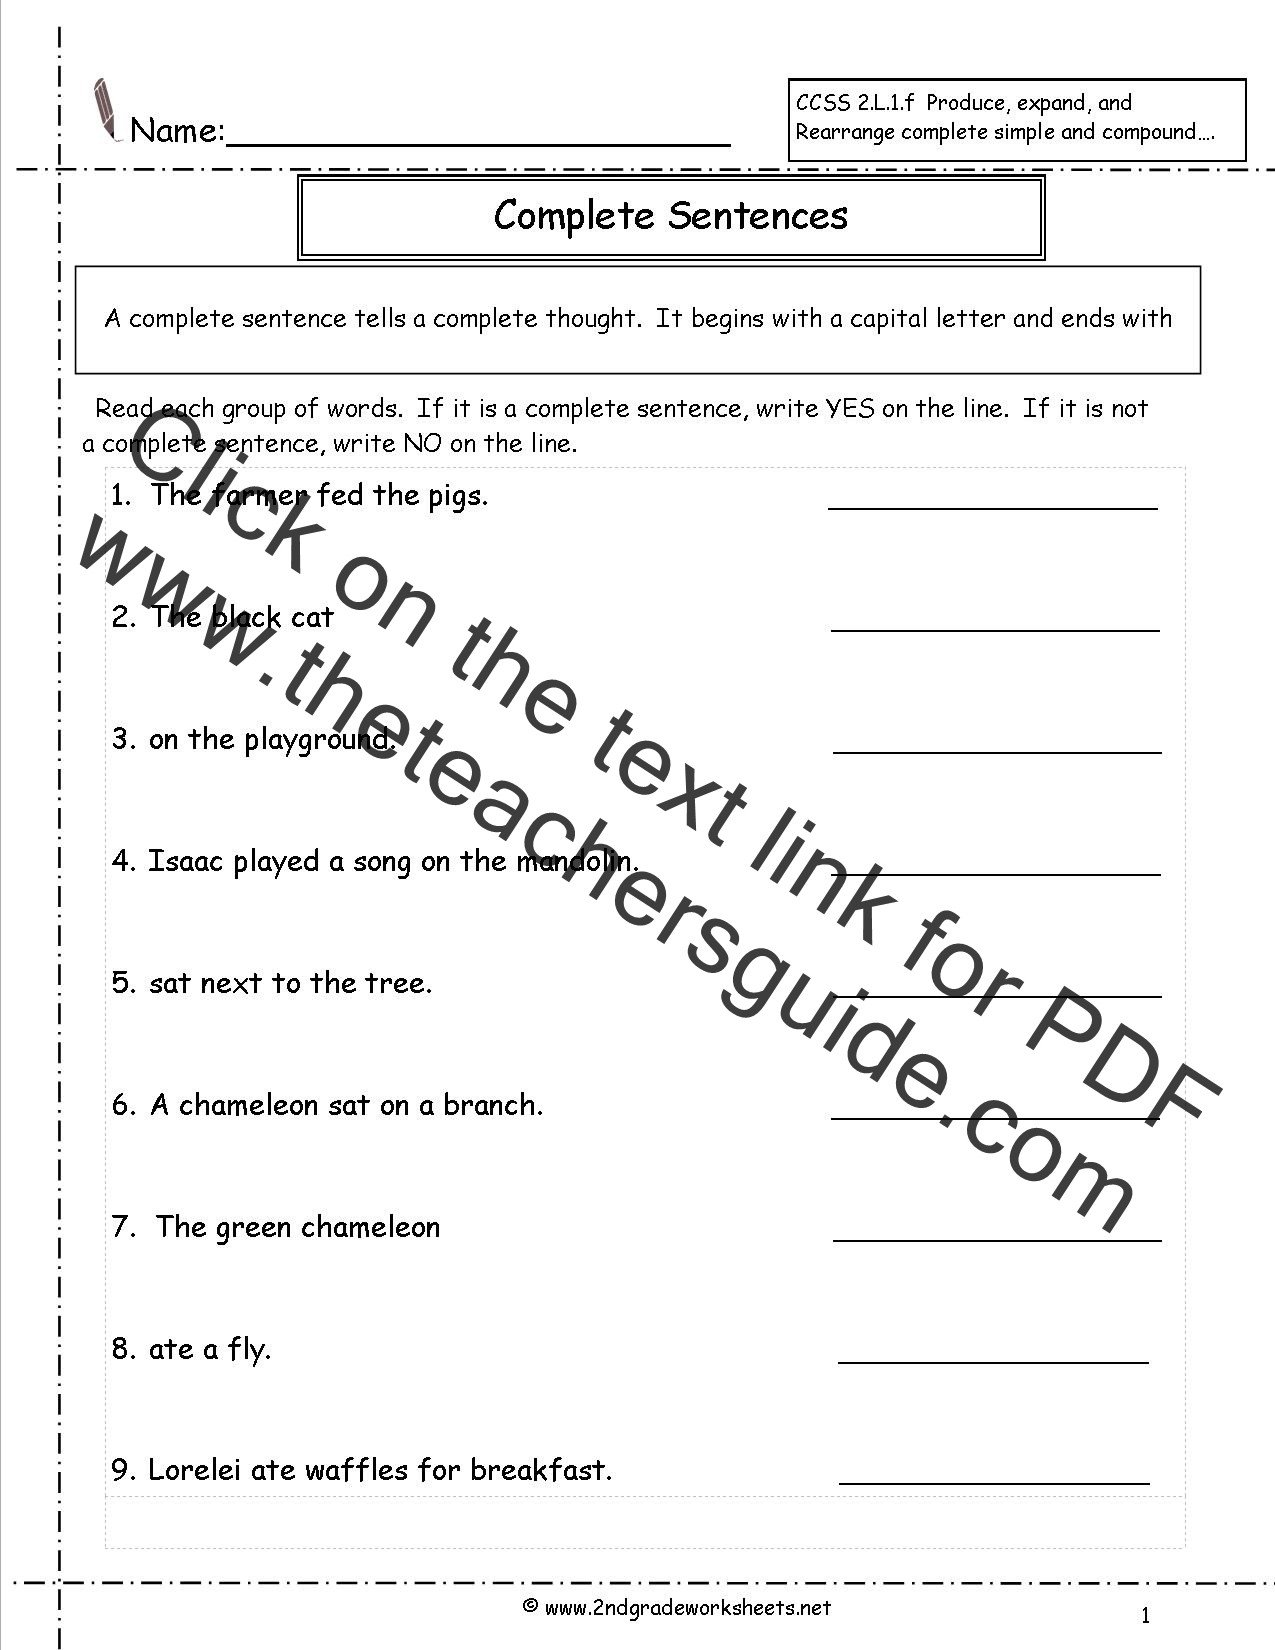 Complex Sentence Worksheets 4th Grade Second Grade Sentences Worksheets Ccss 2 L 1 F Worksheets